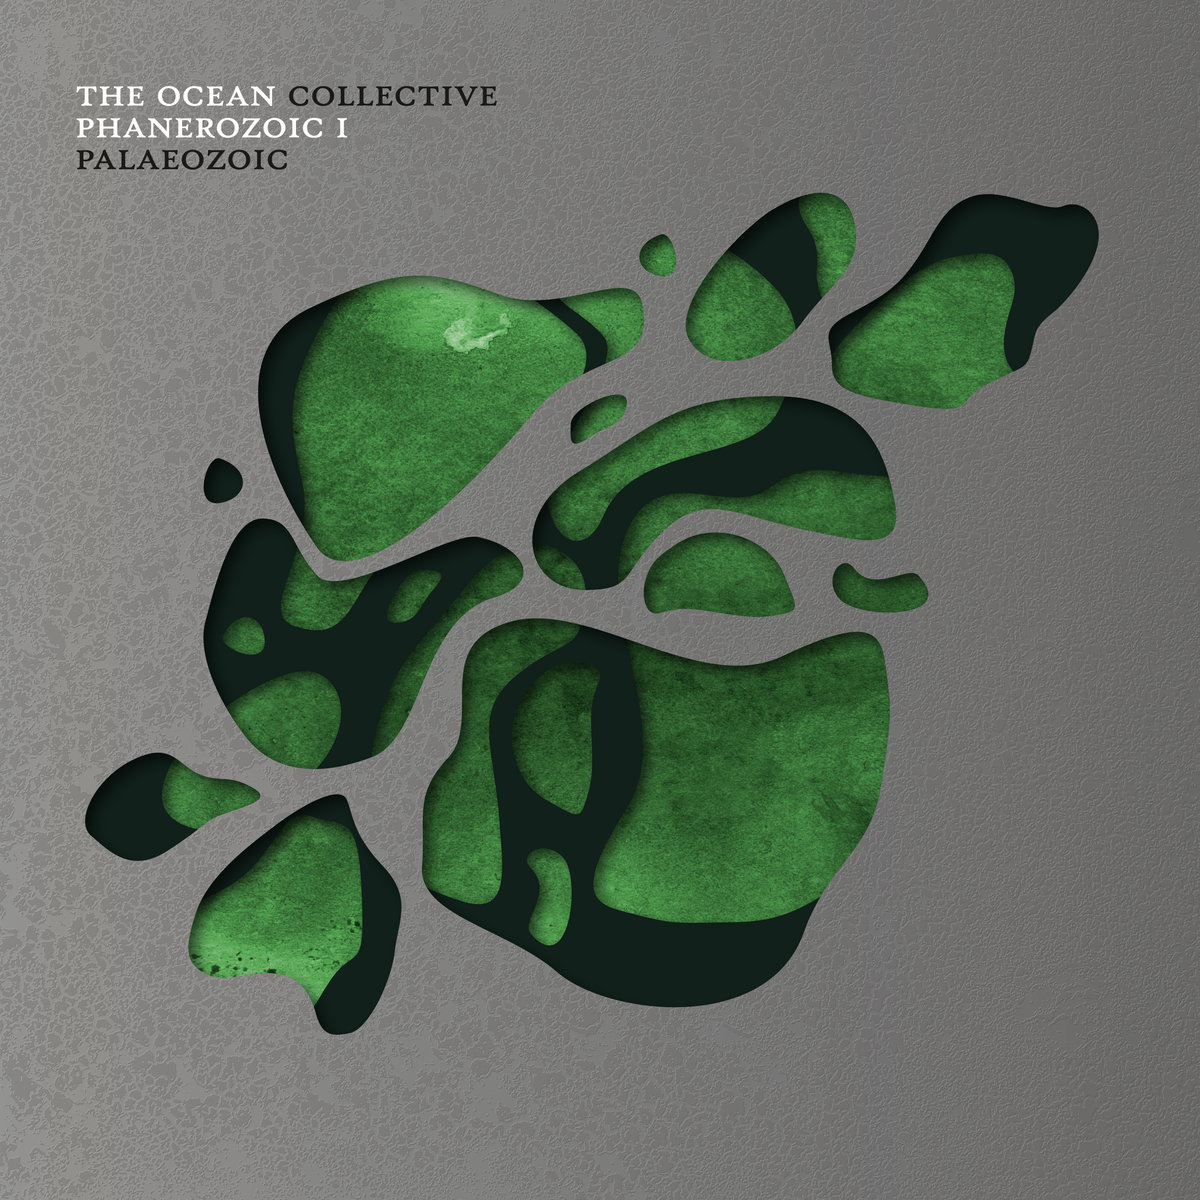 THE OCEAN COLLECTIVE Phanerozoic I Palaeozoic